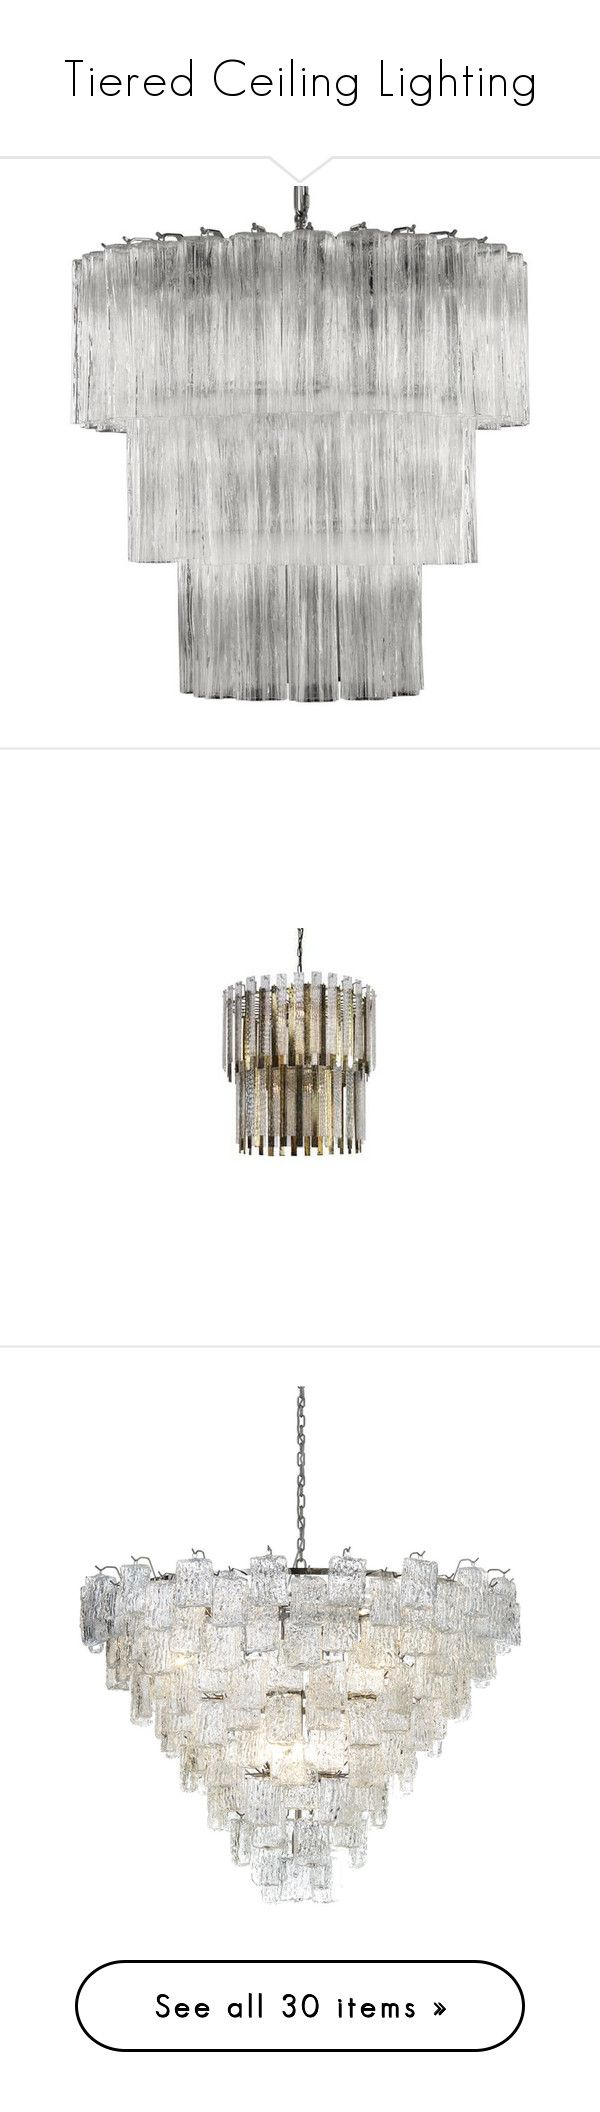 Tiered Ceiling Lighting\